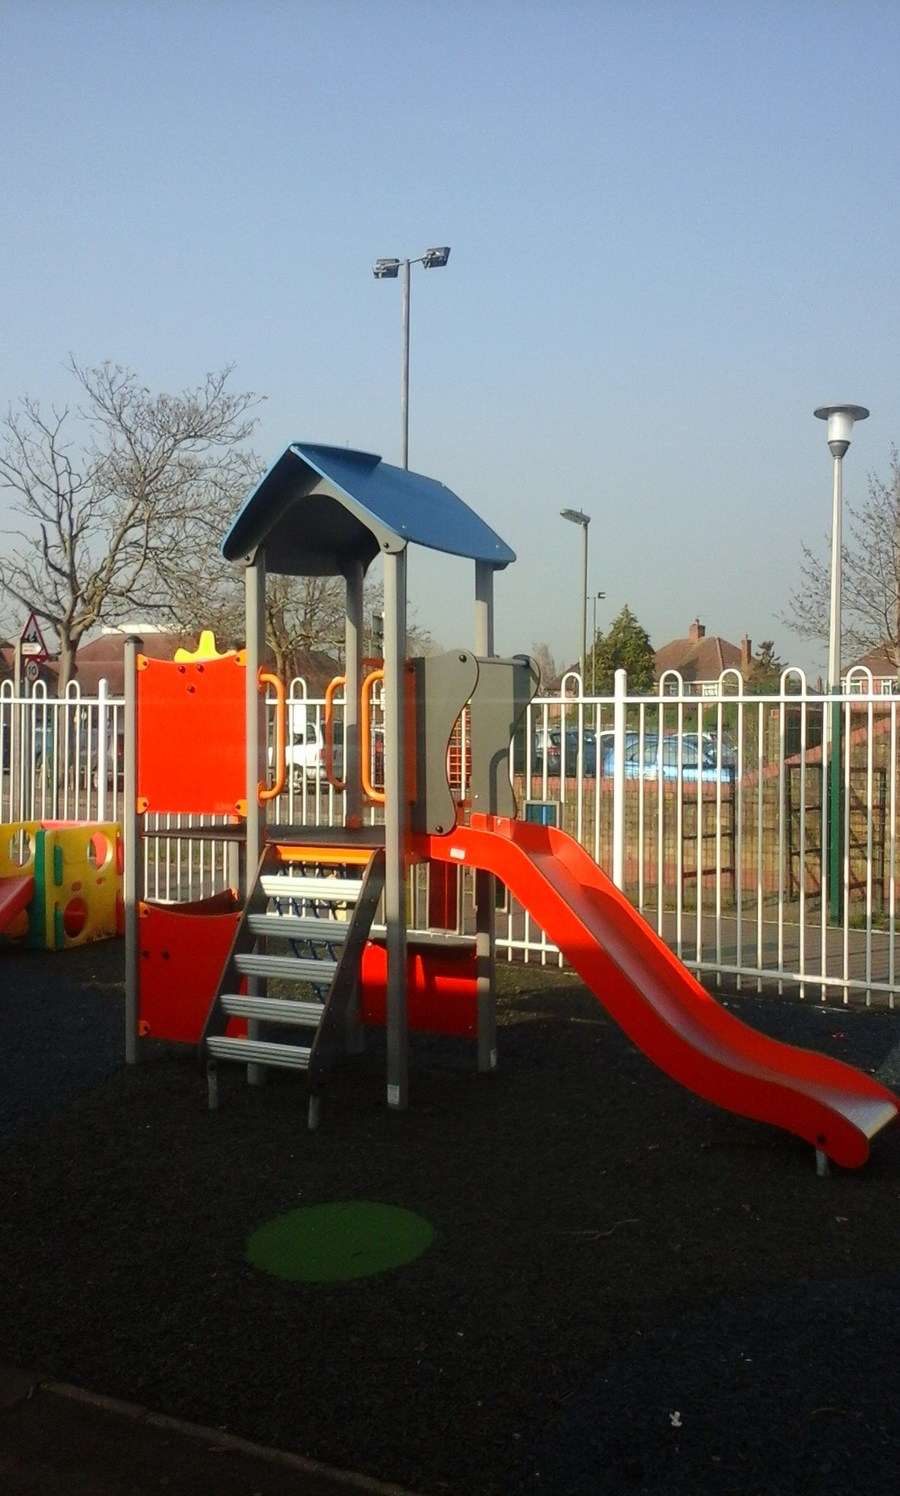 Our lovely new climbing frame